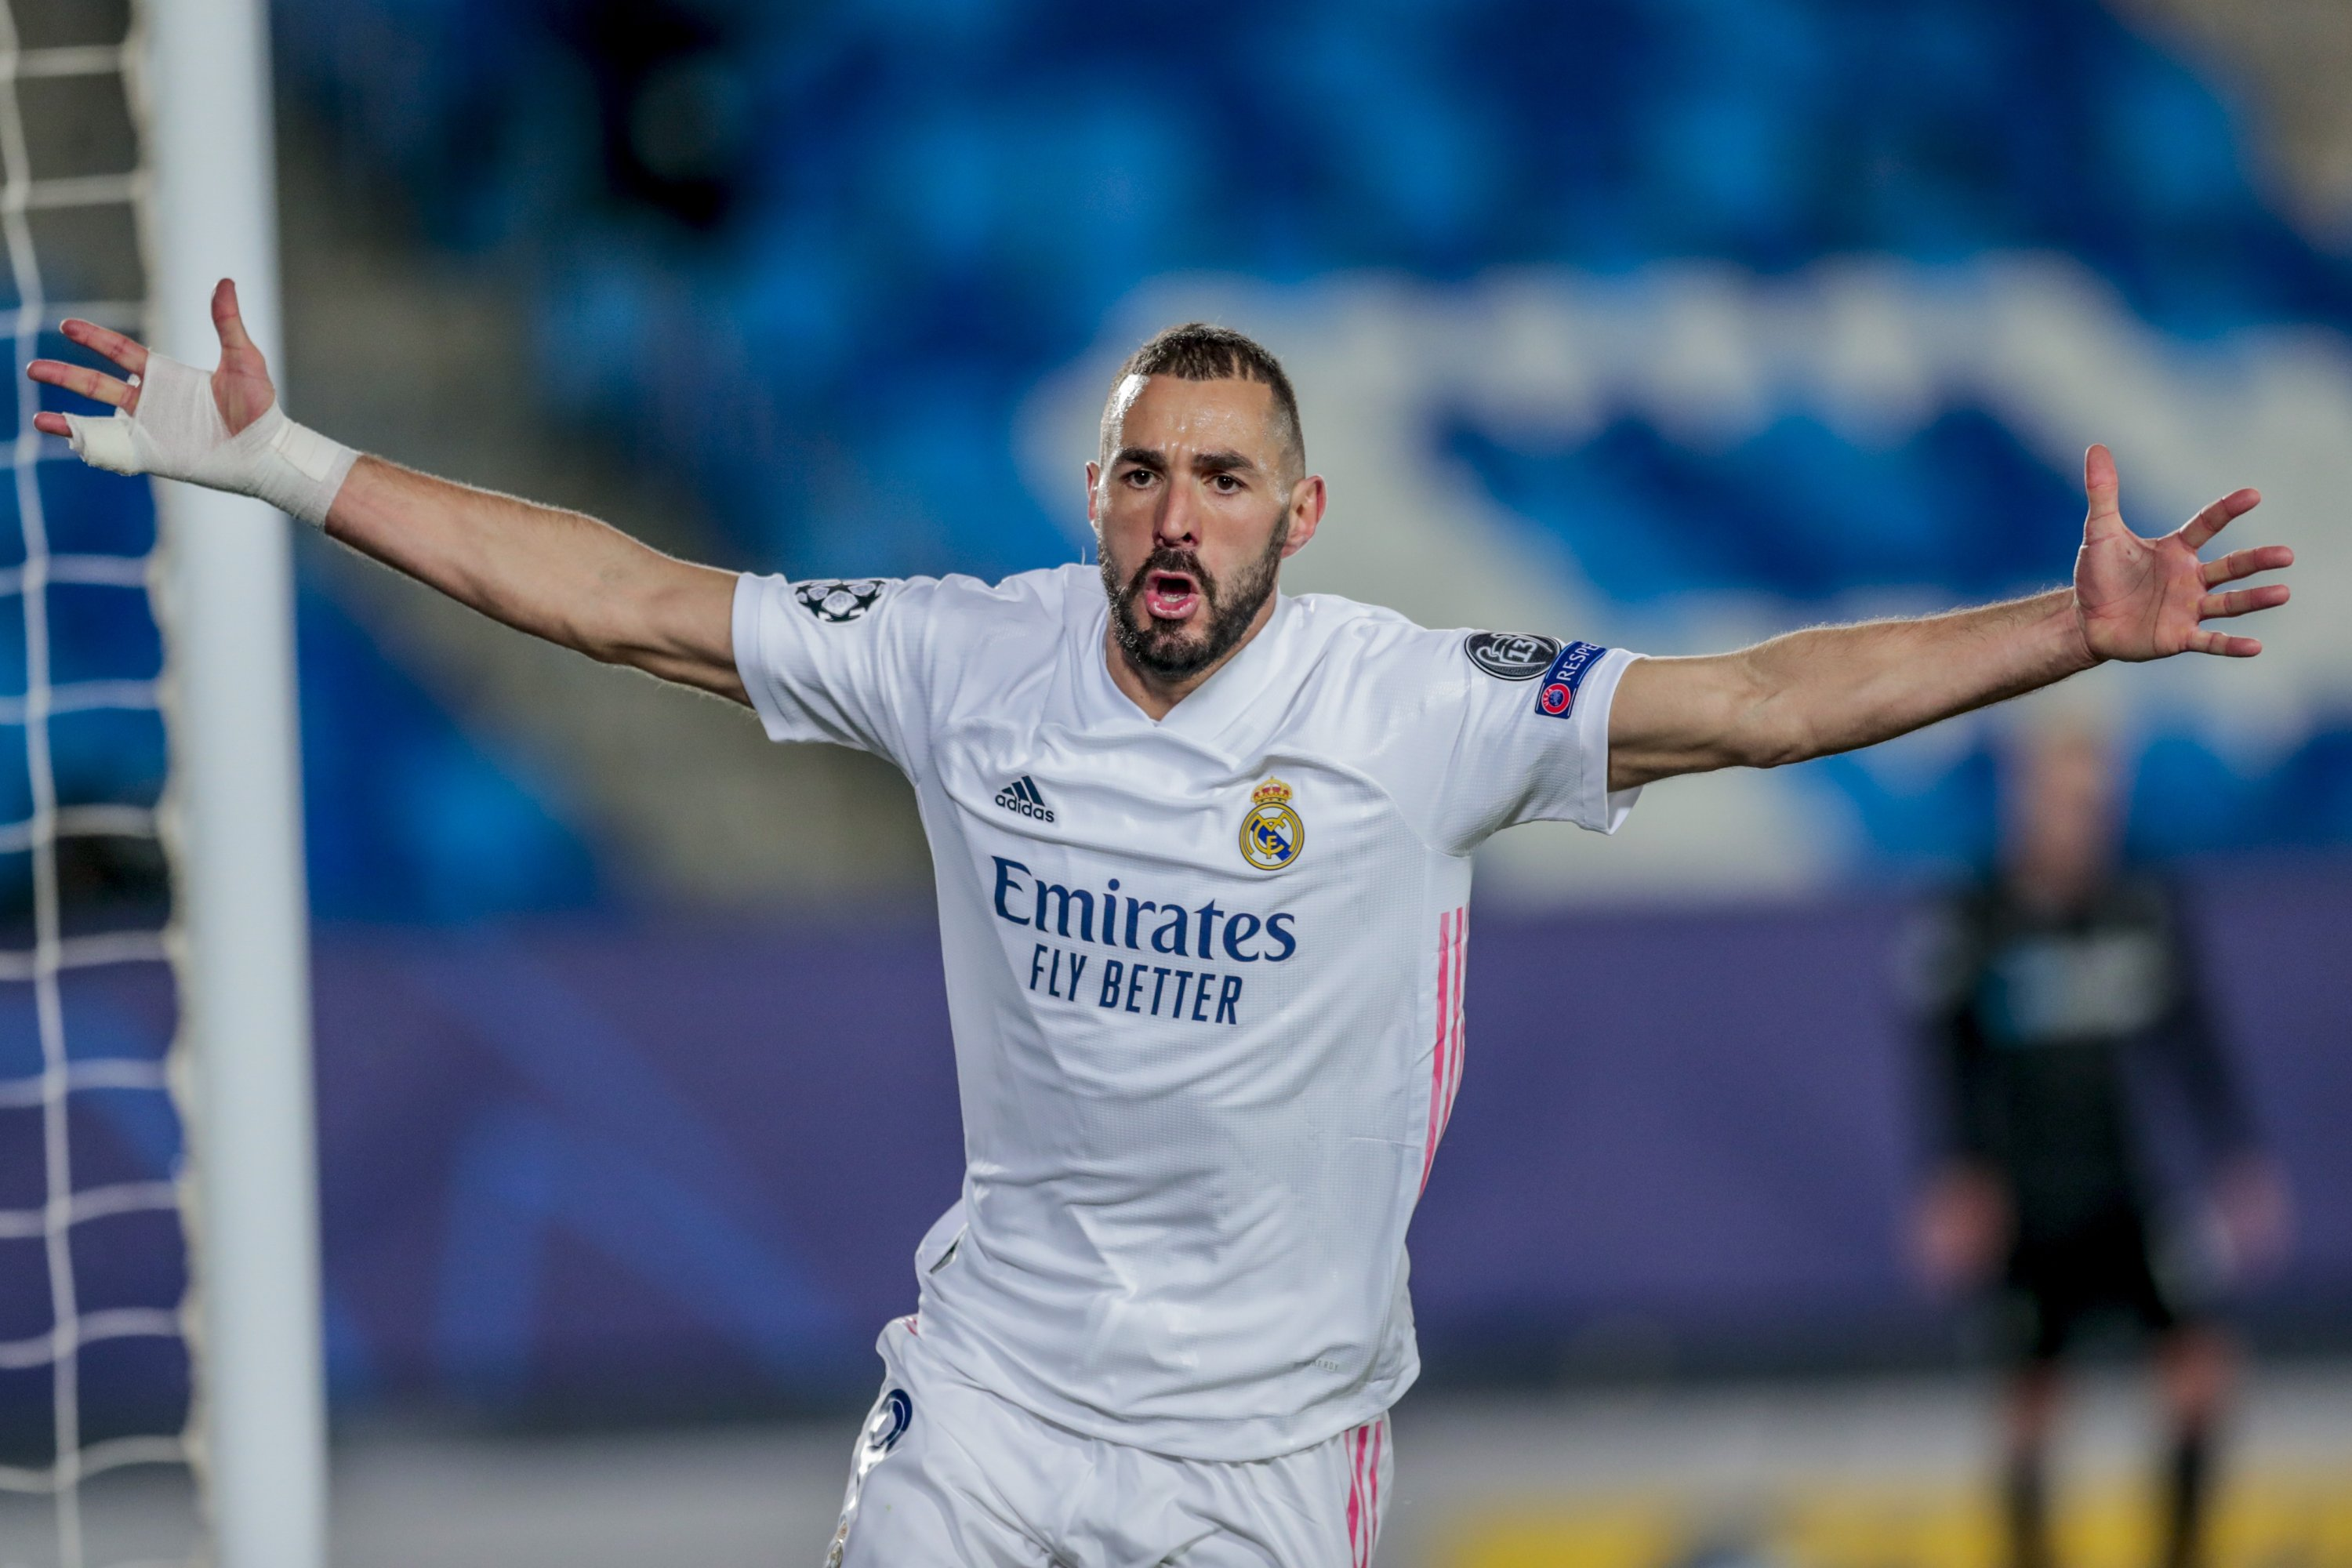 Real Madrid star Benzema to stand trial in 'sex tape' case